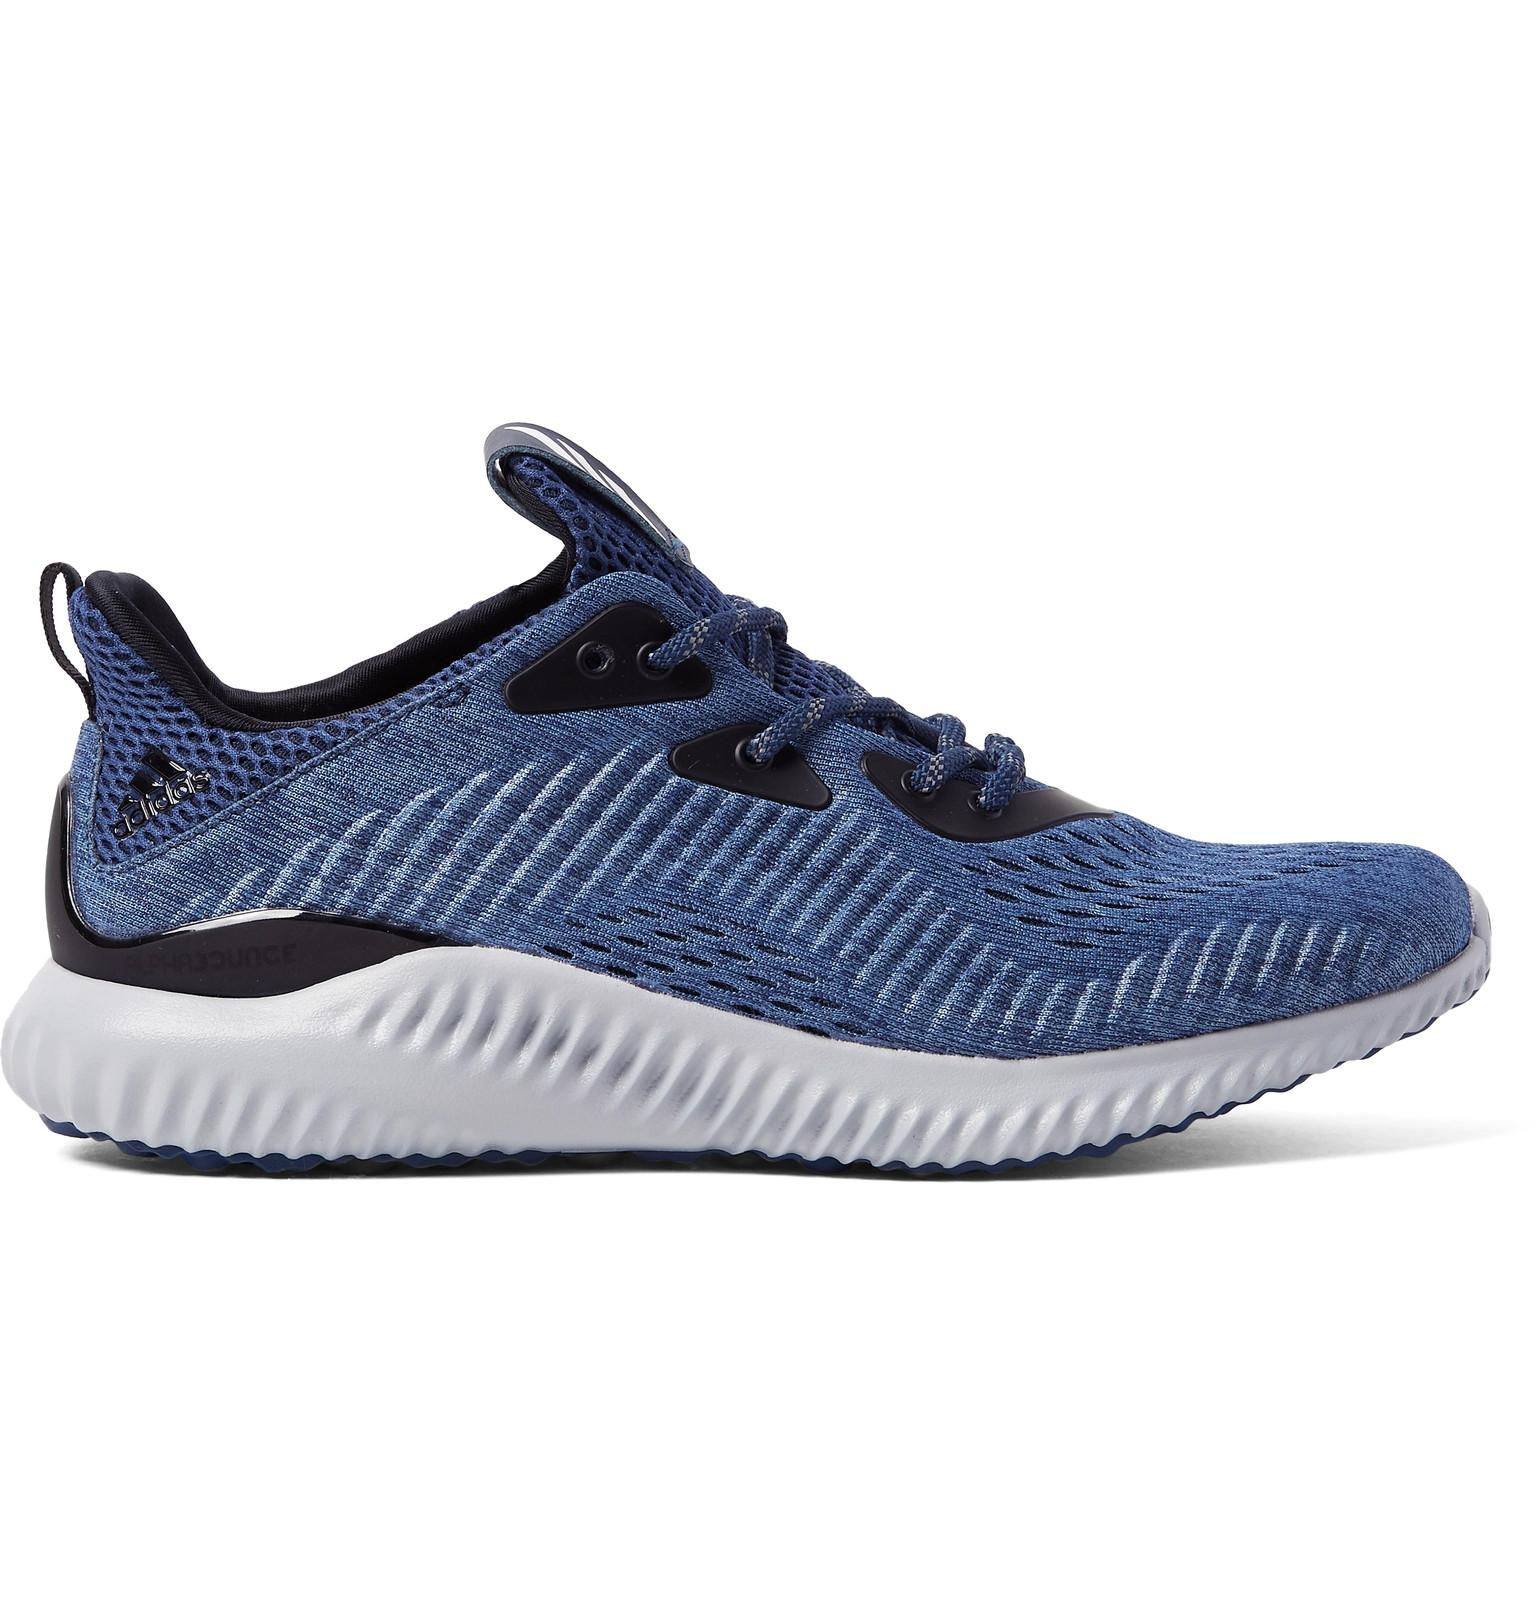 Reebok Blue Mesh Sport Shoes